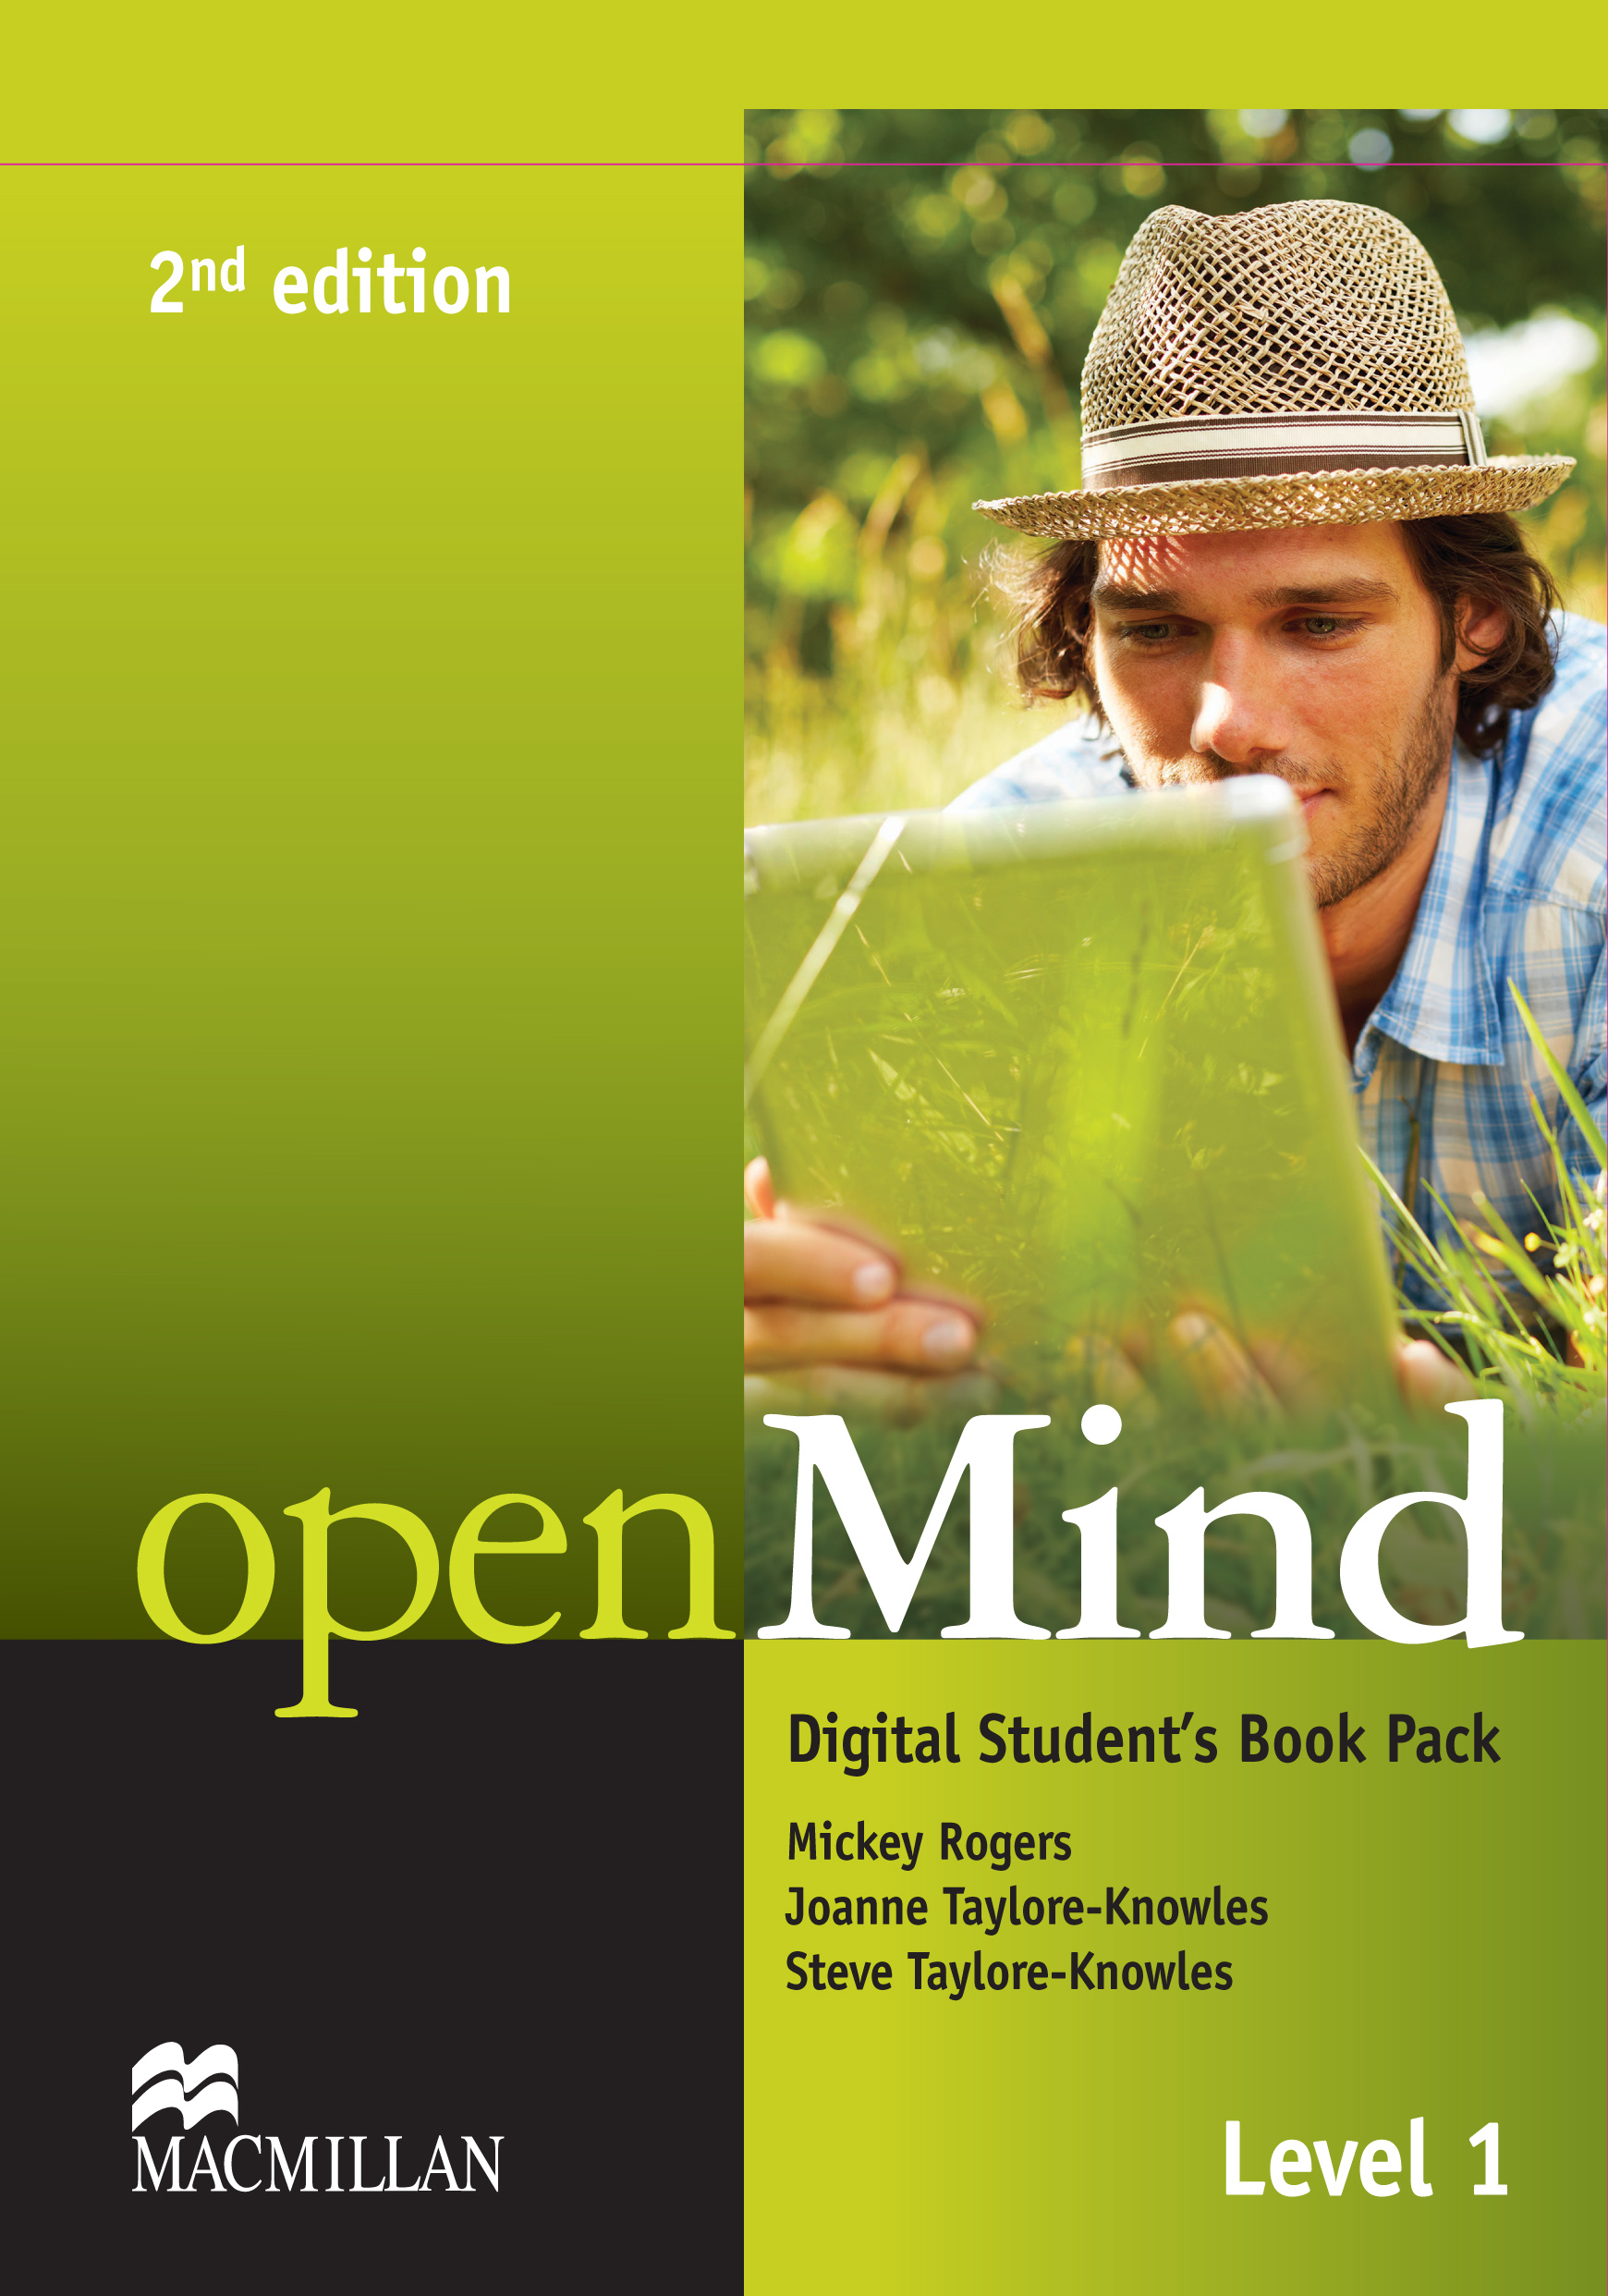 openMind 2nd Edition Level 1 Digital Student